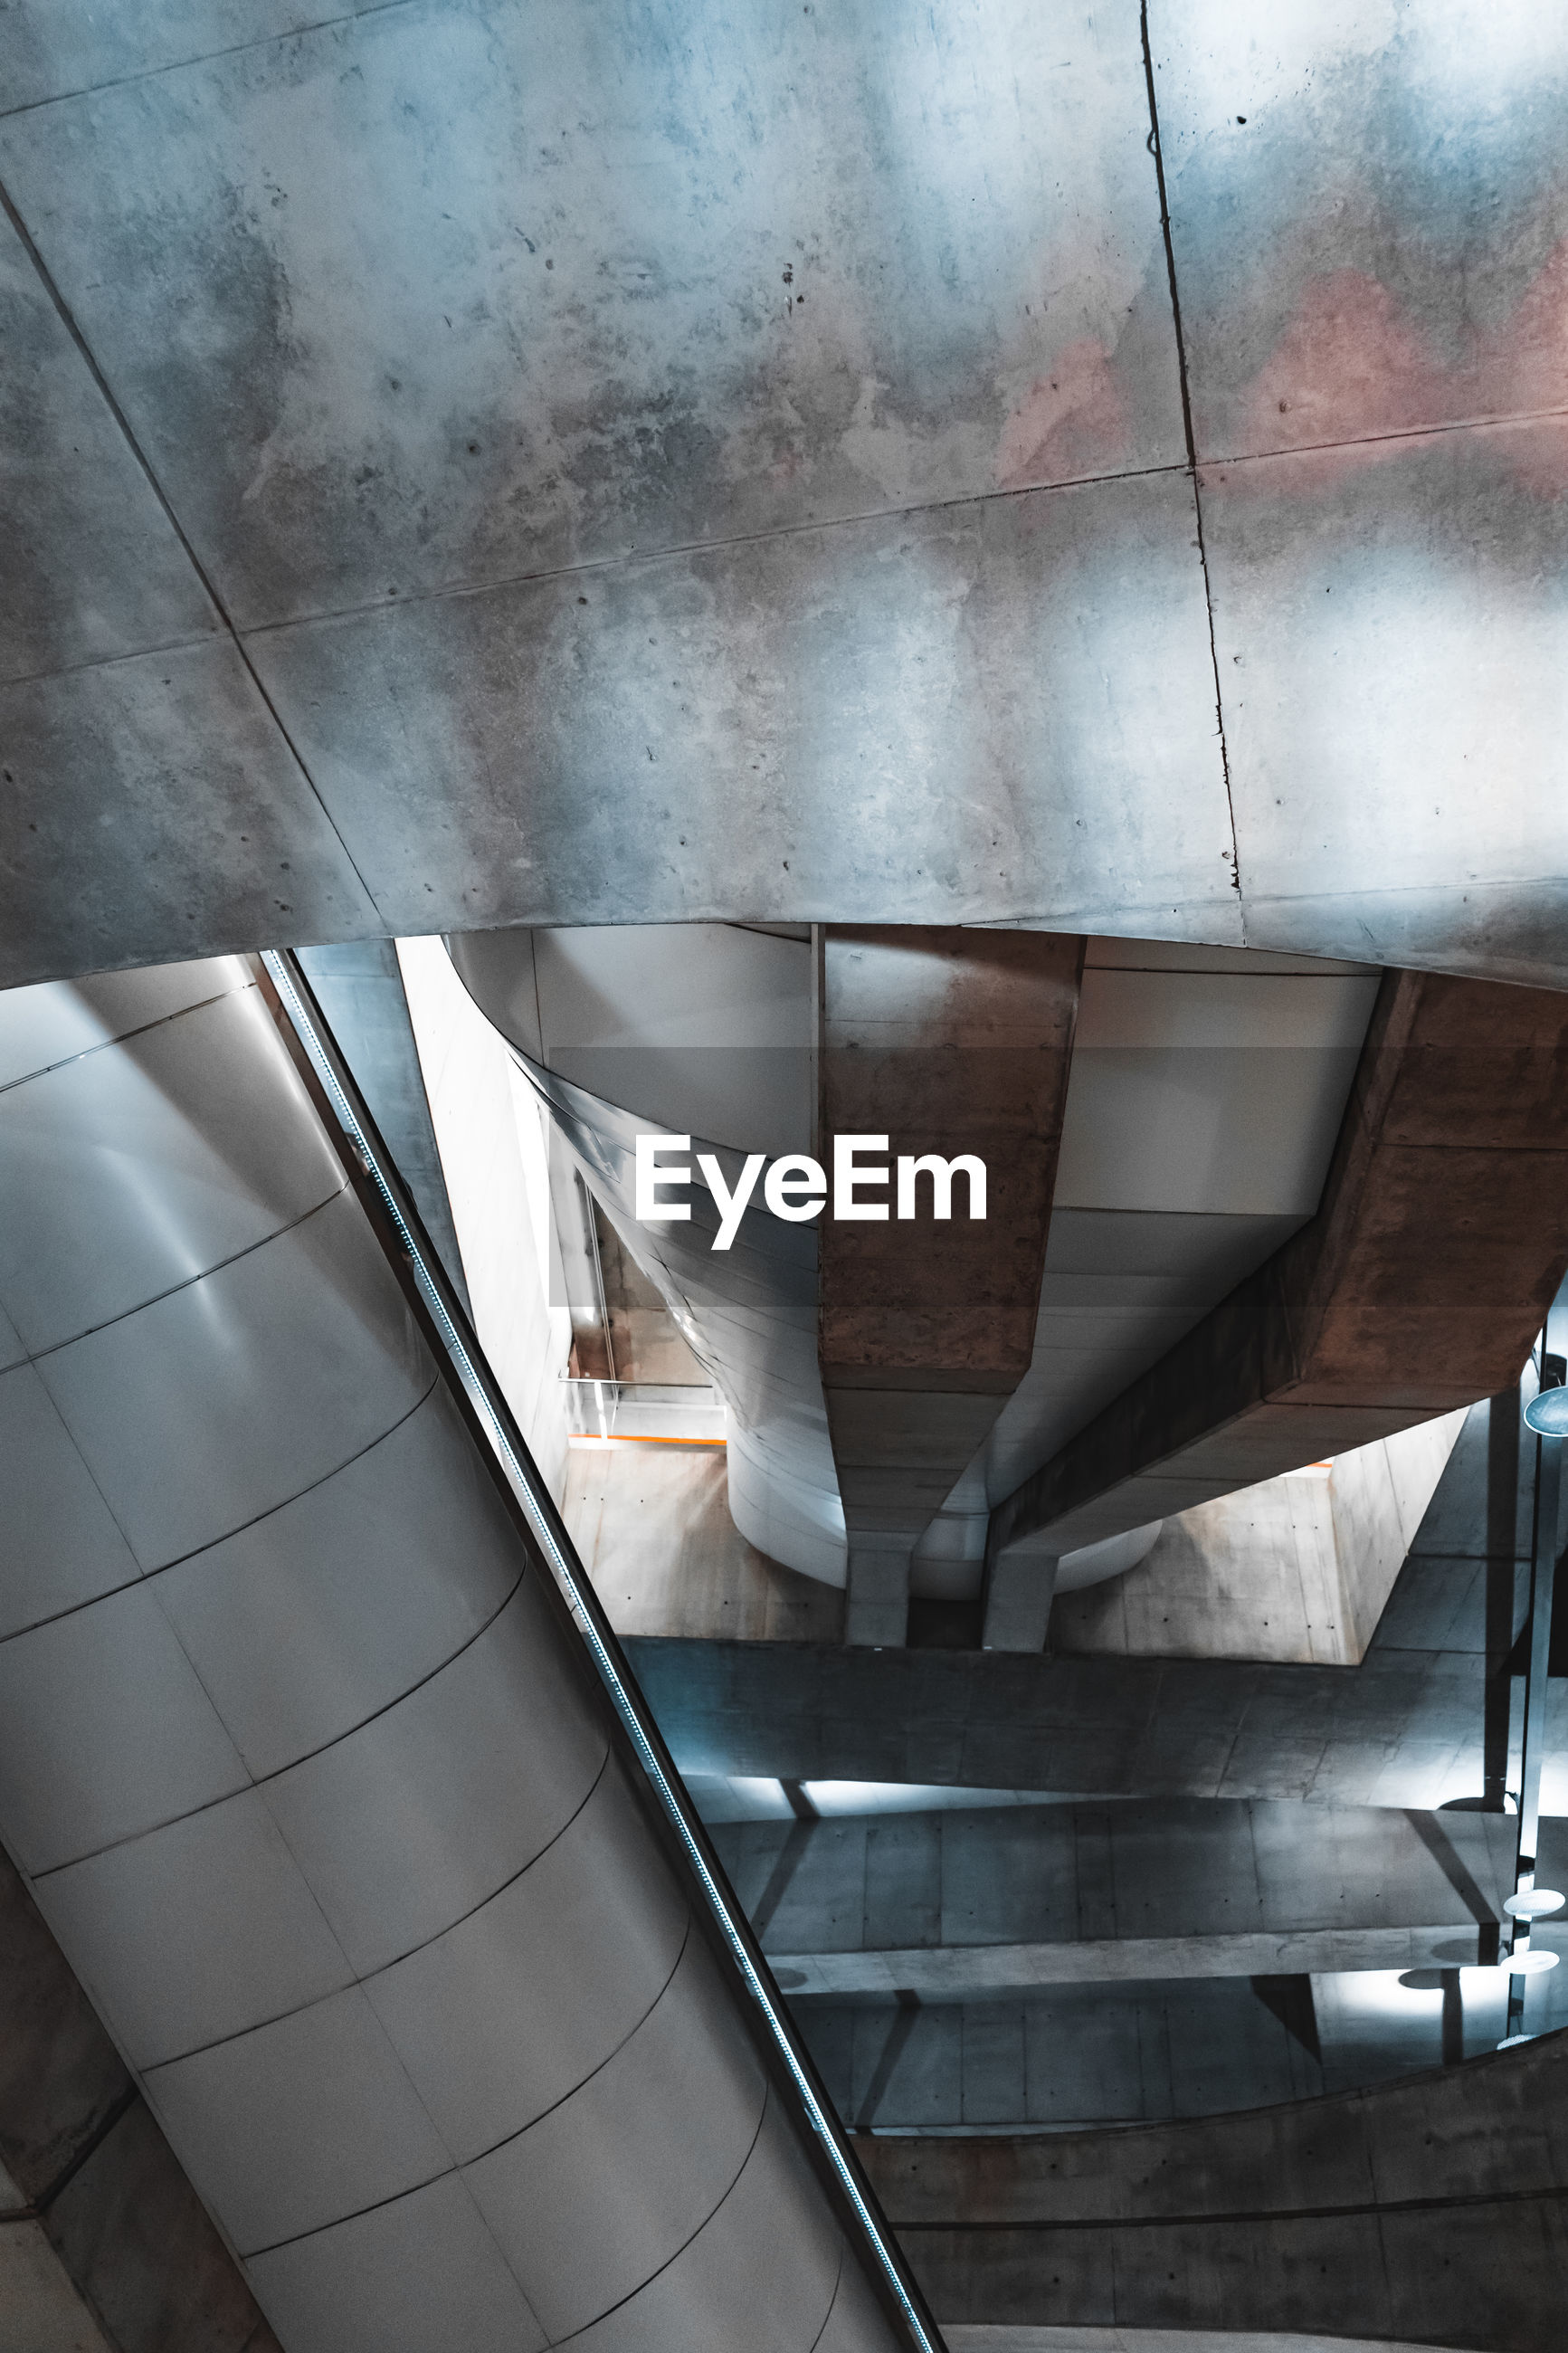 HIGH ANGLE VIEW OF ESCALATOR AND BUILDING